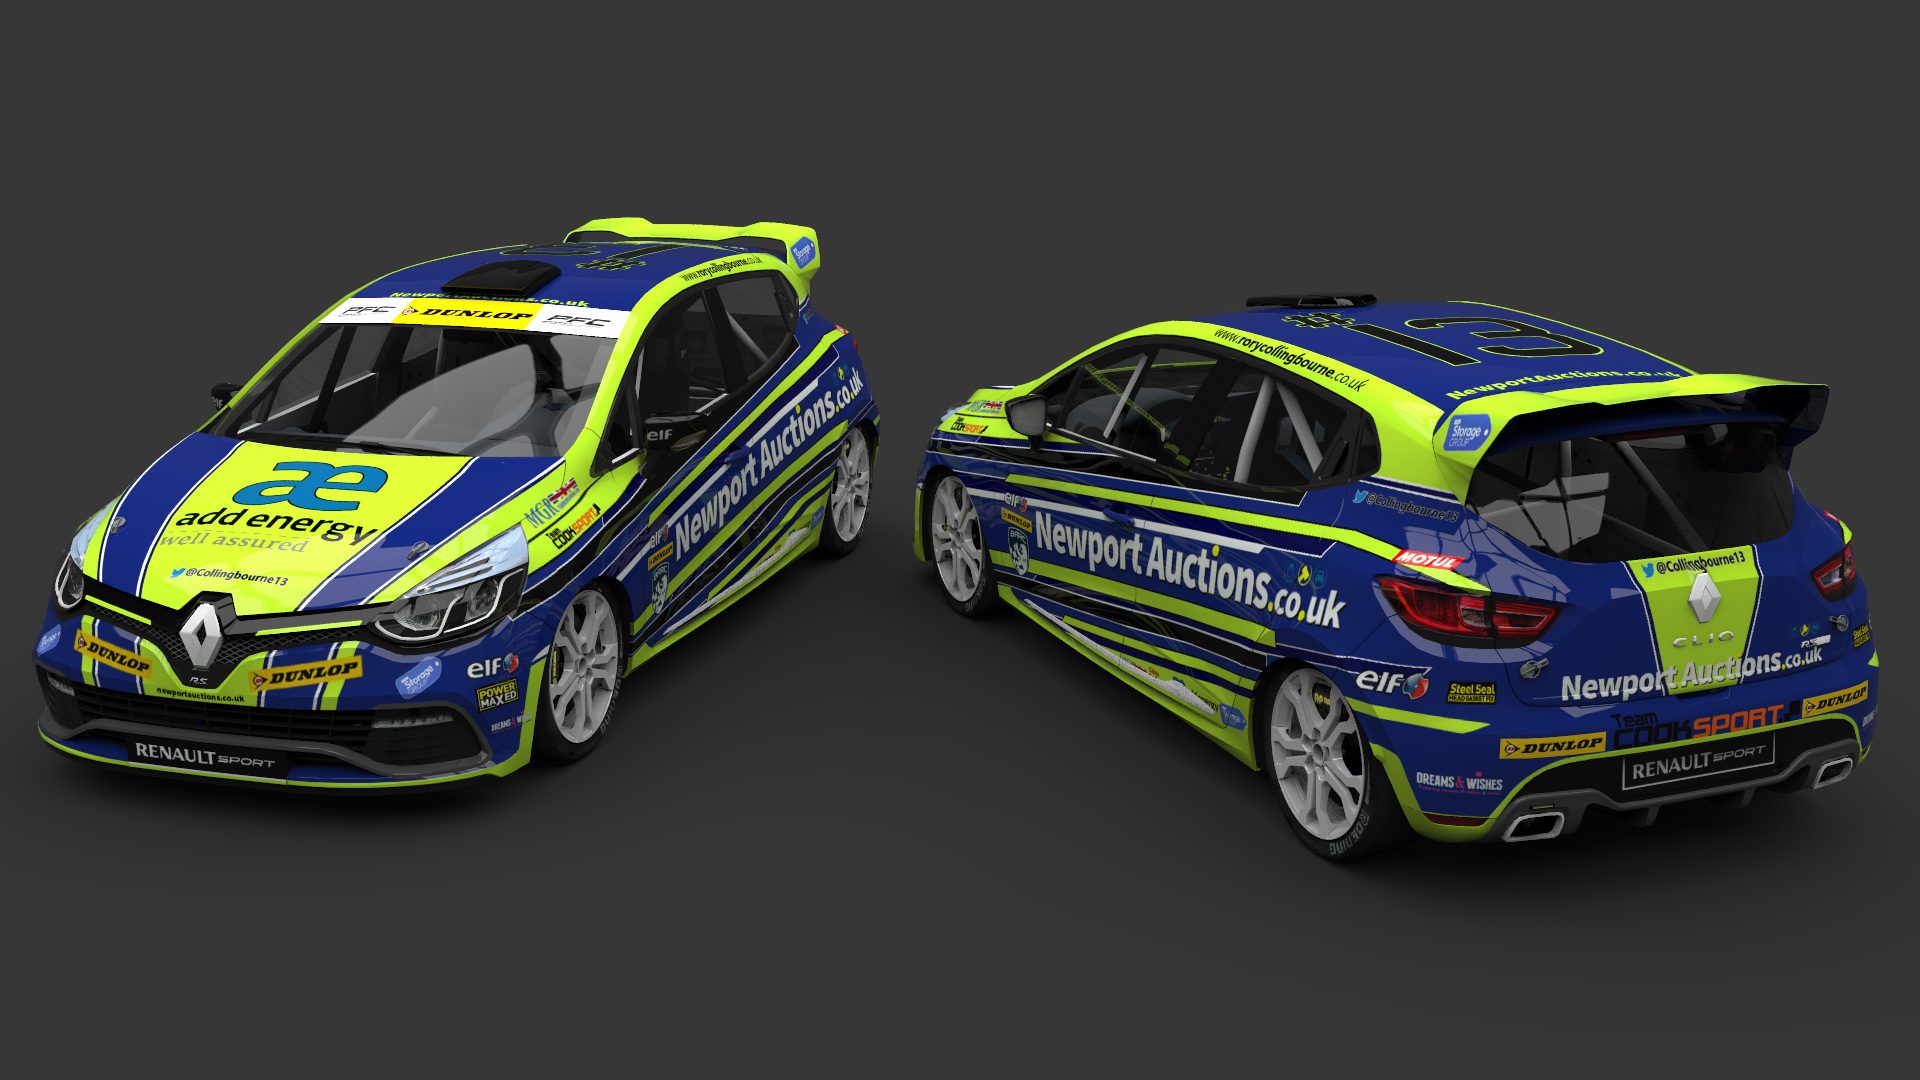 RENAULT CLIO CUP 200 TURBO